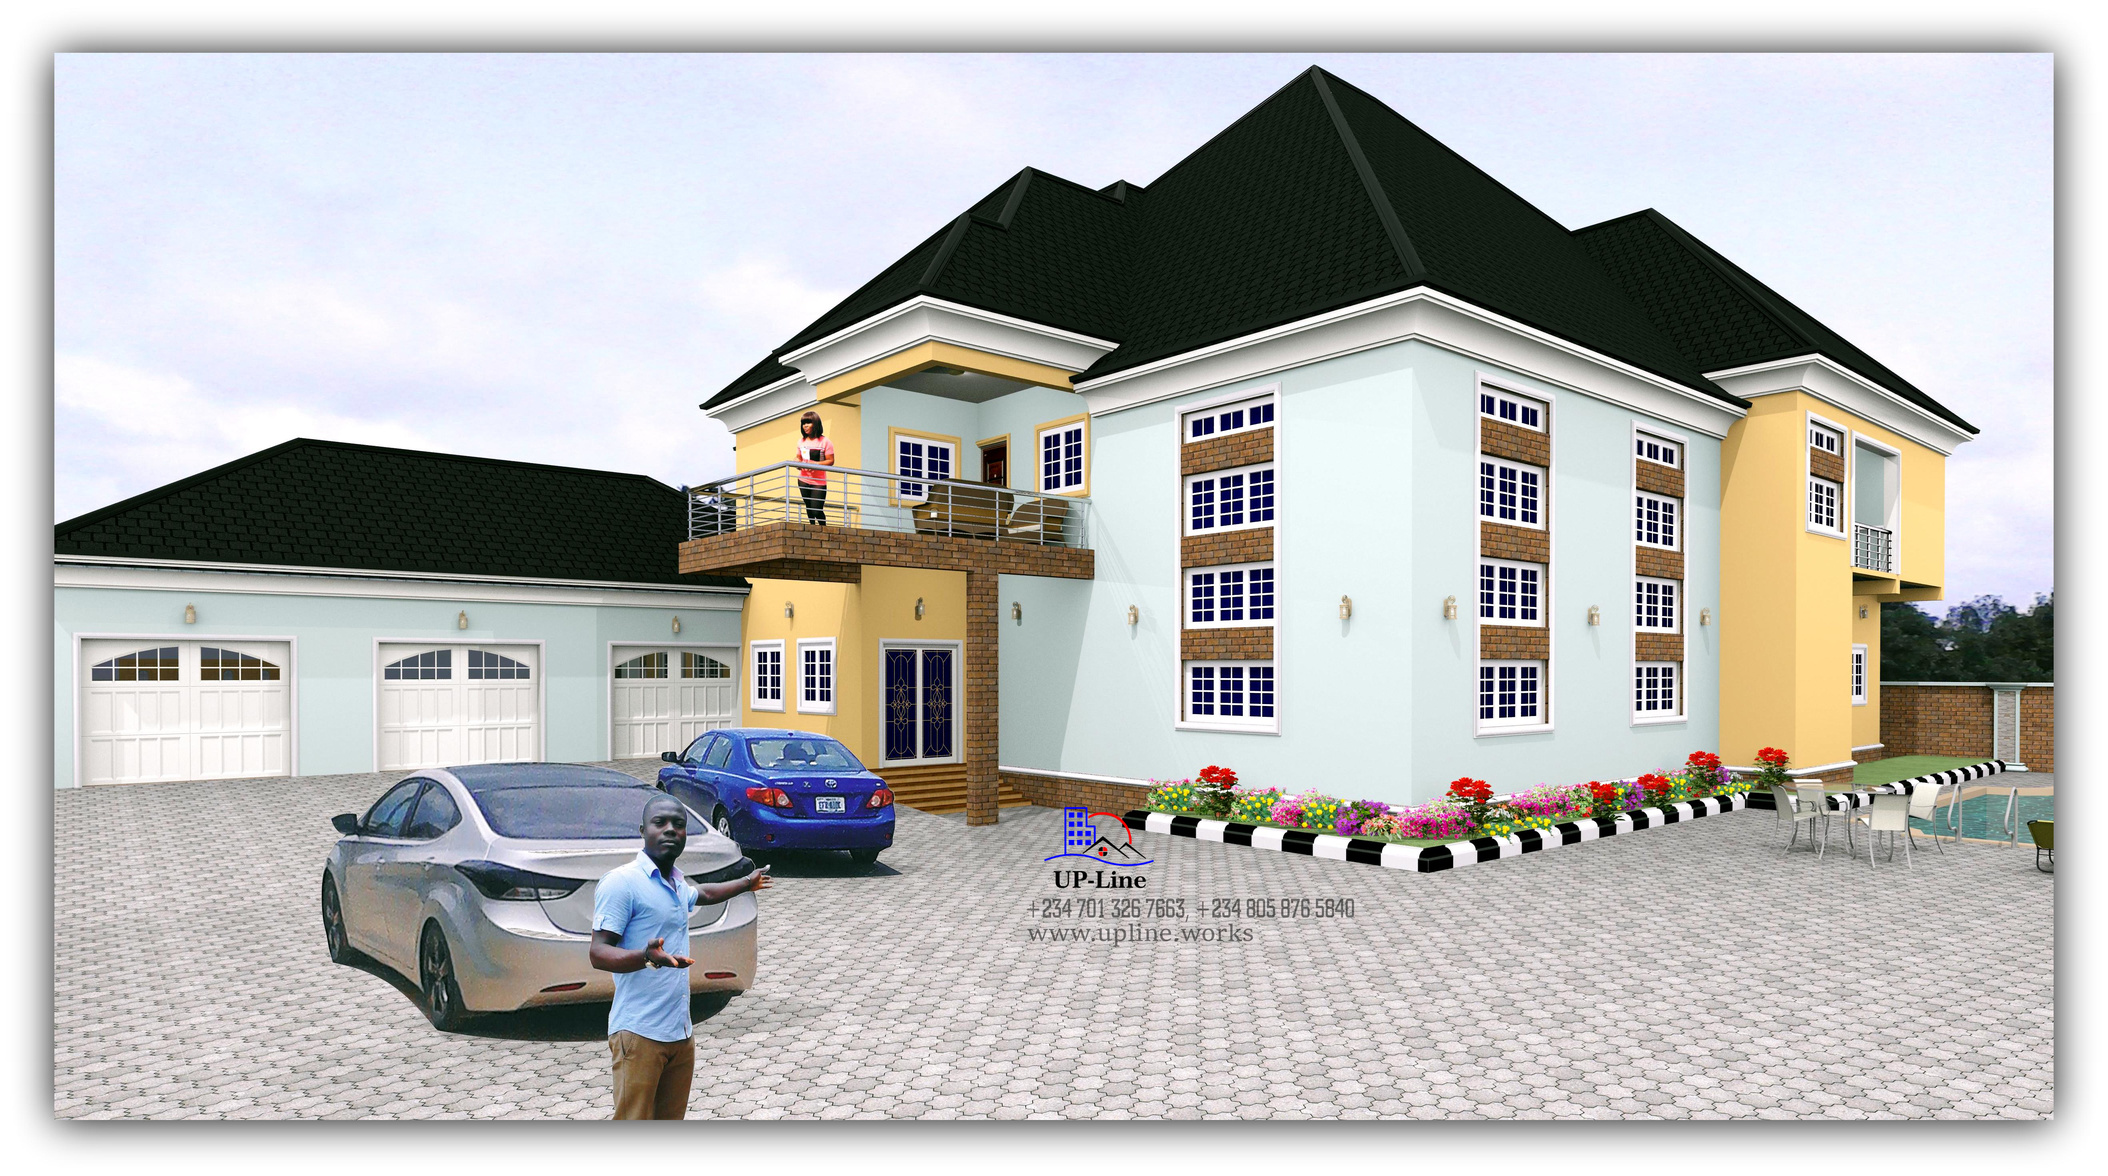 Upline Works - Top architectural company in Nigeria